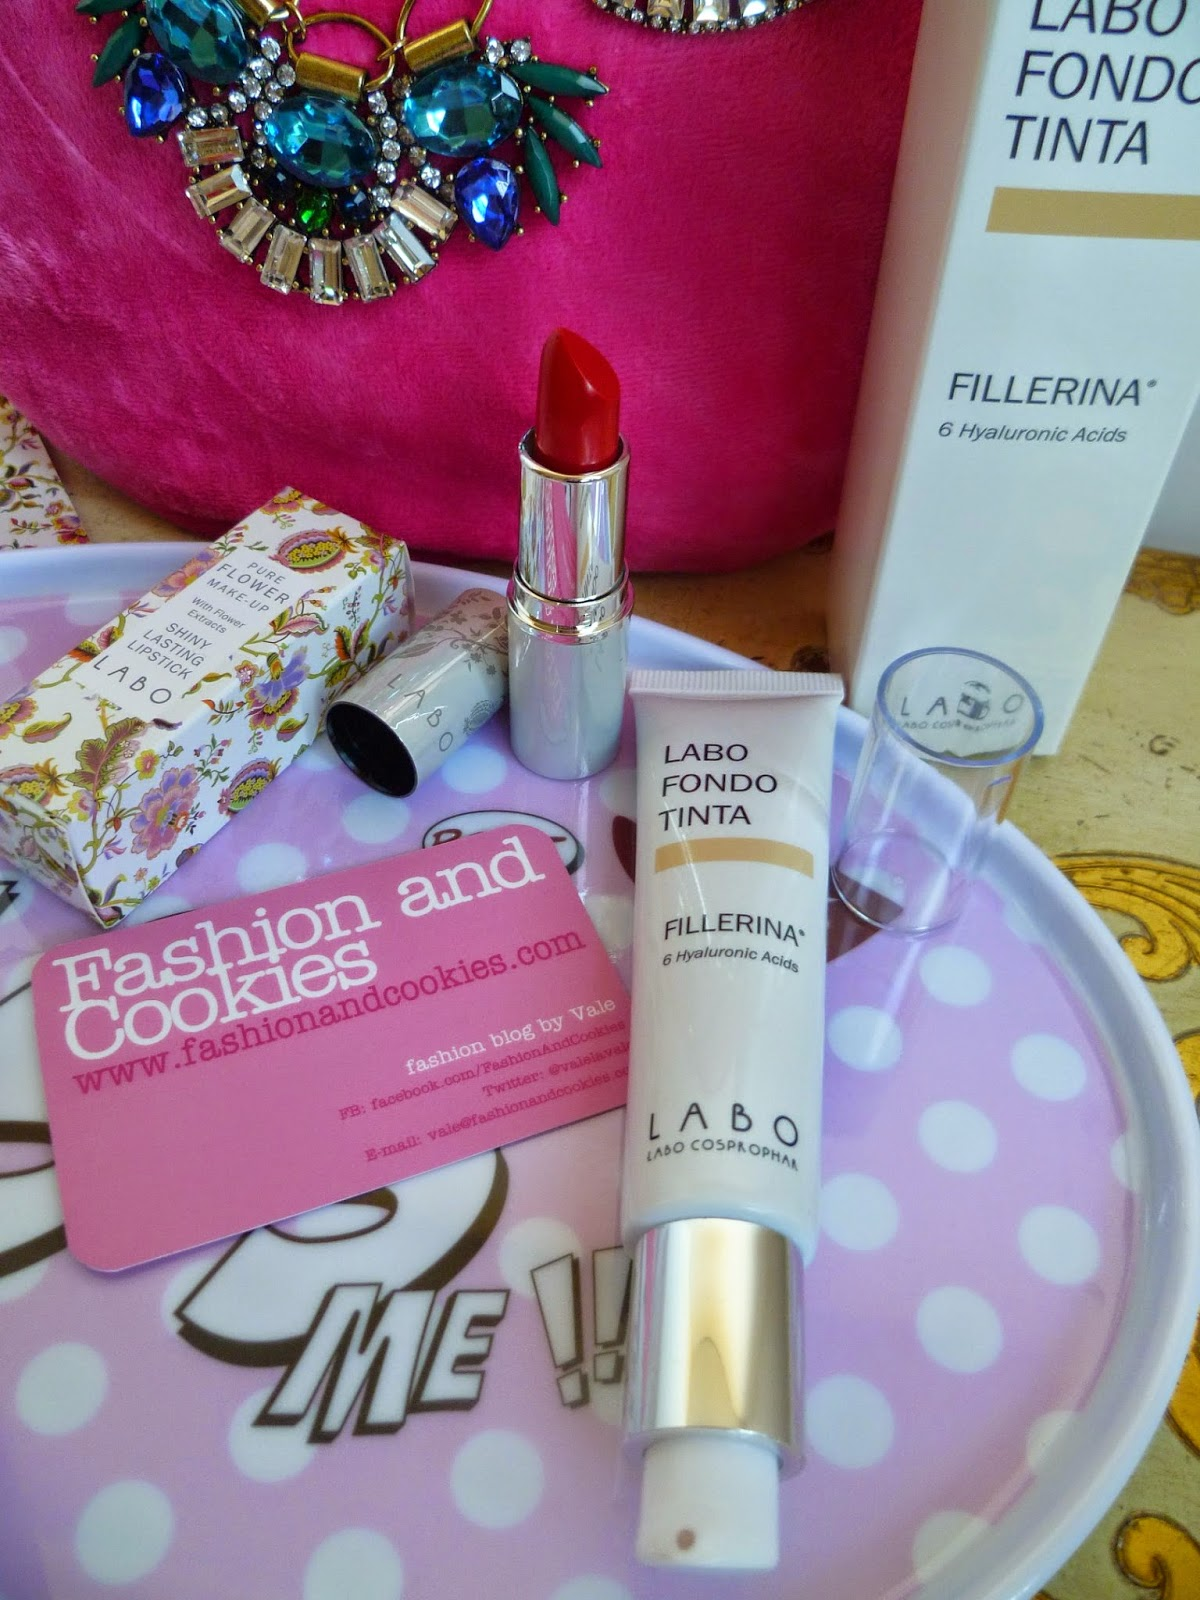 Labo make-up, Labo fillerina, Labo fillerina fondotinta, Fashion and Cookies, fashion blogger, fillerina review